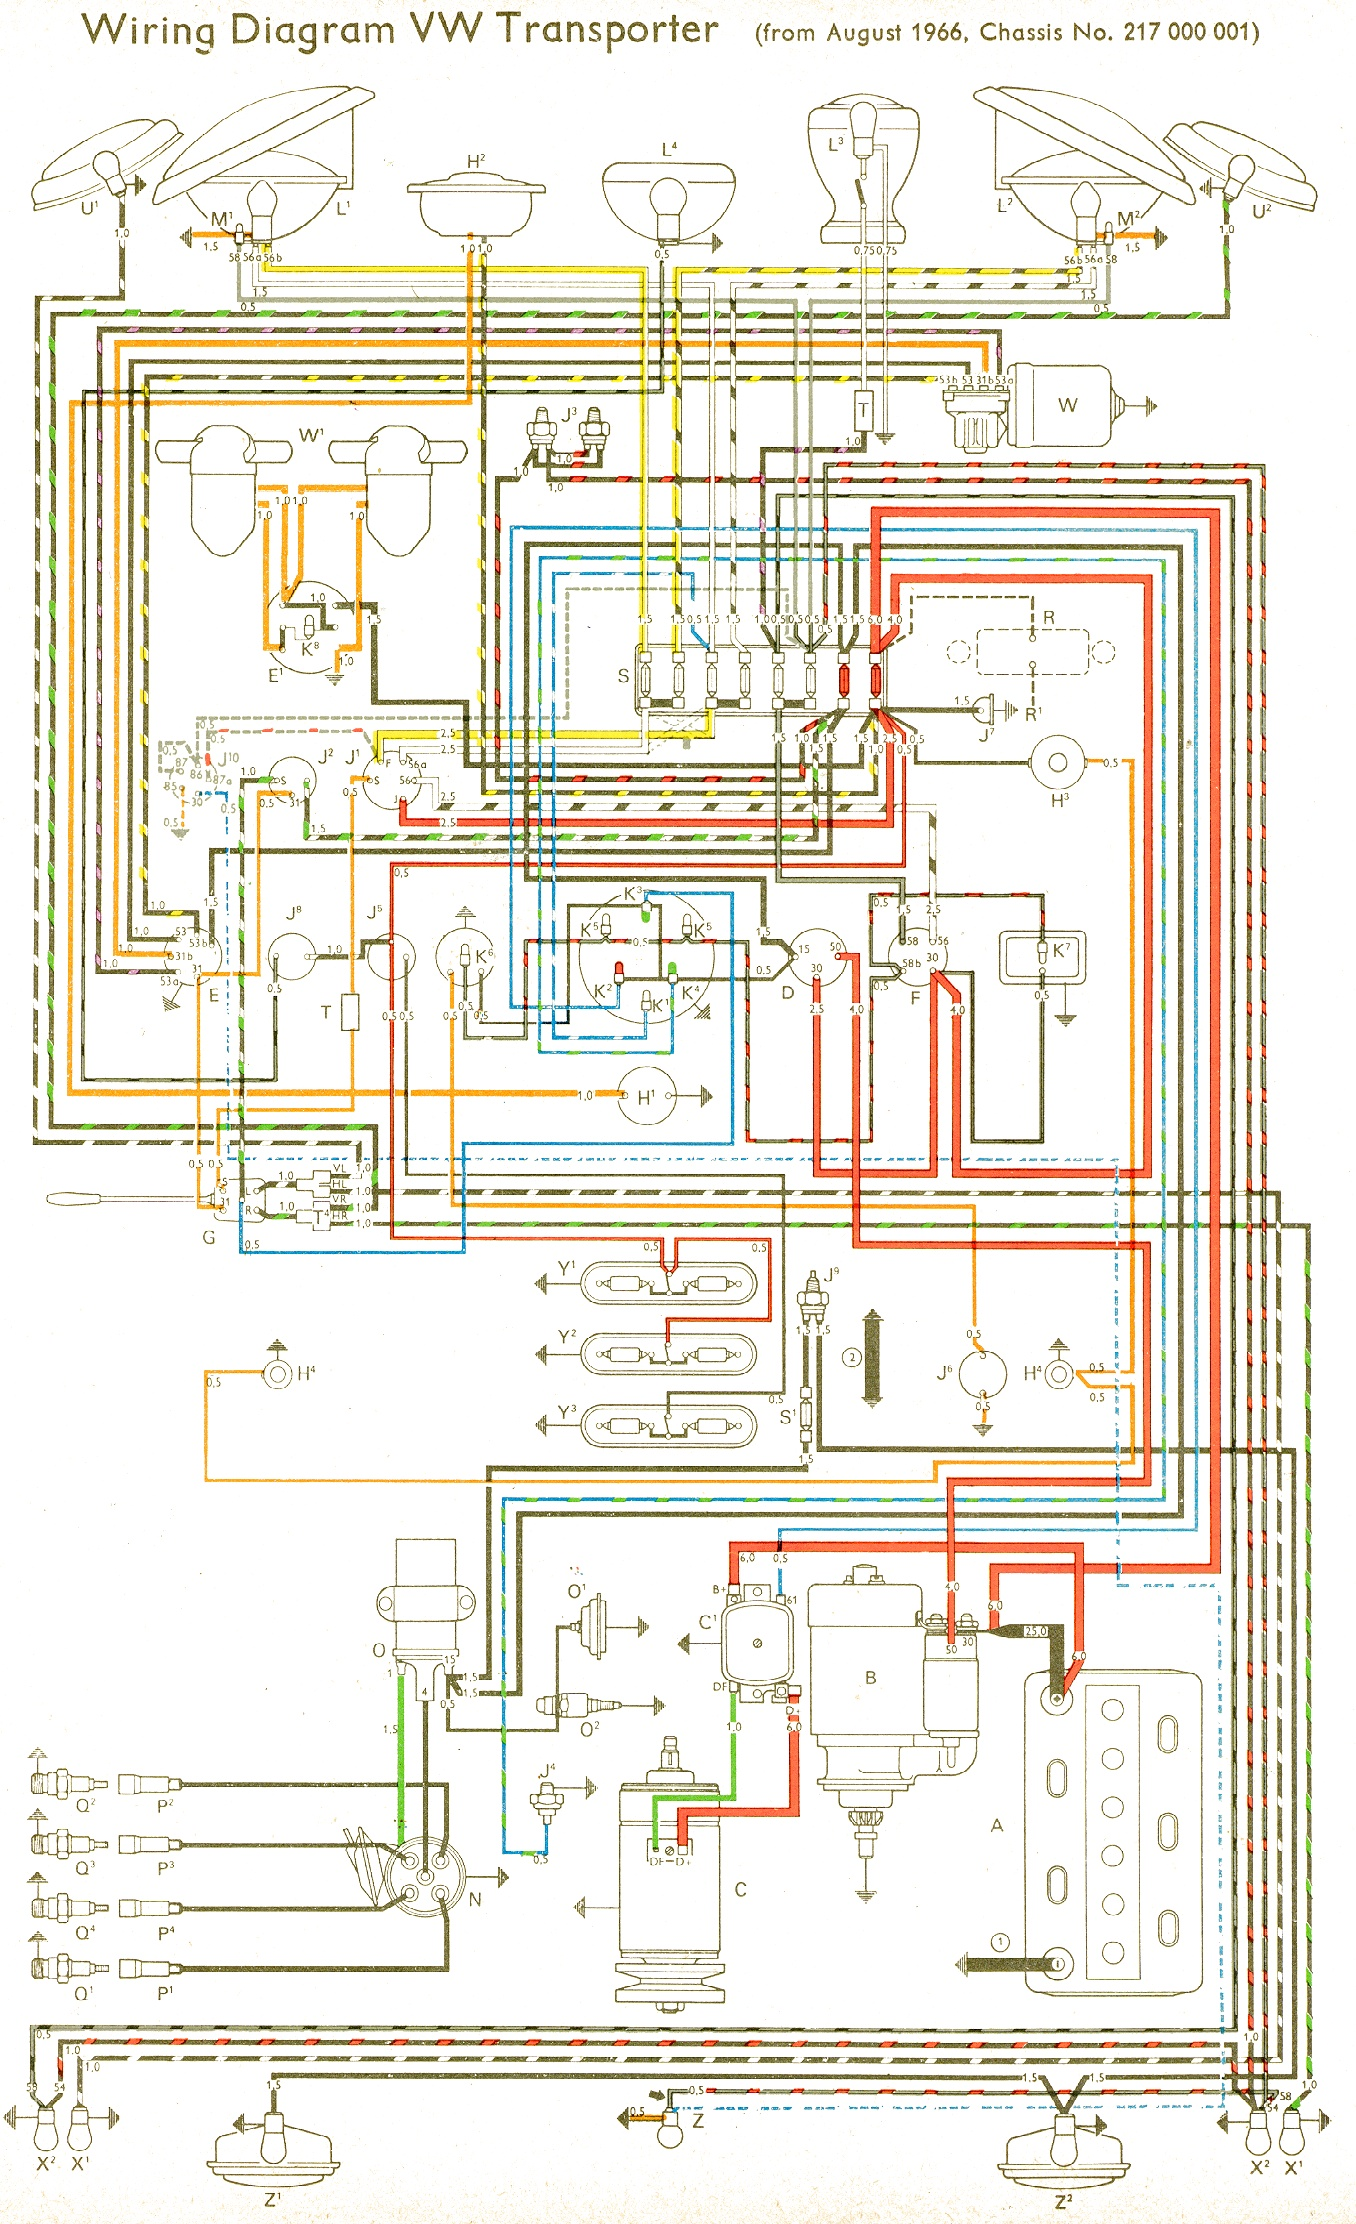 77 vw van wiring diagram wiring diagram mega77 vw van wiring diagram wiring diagram data schema 77 vw bus wiring diagram 77 vw